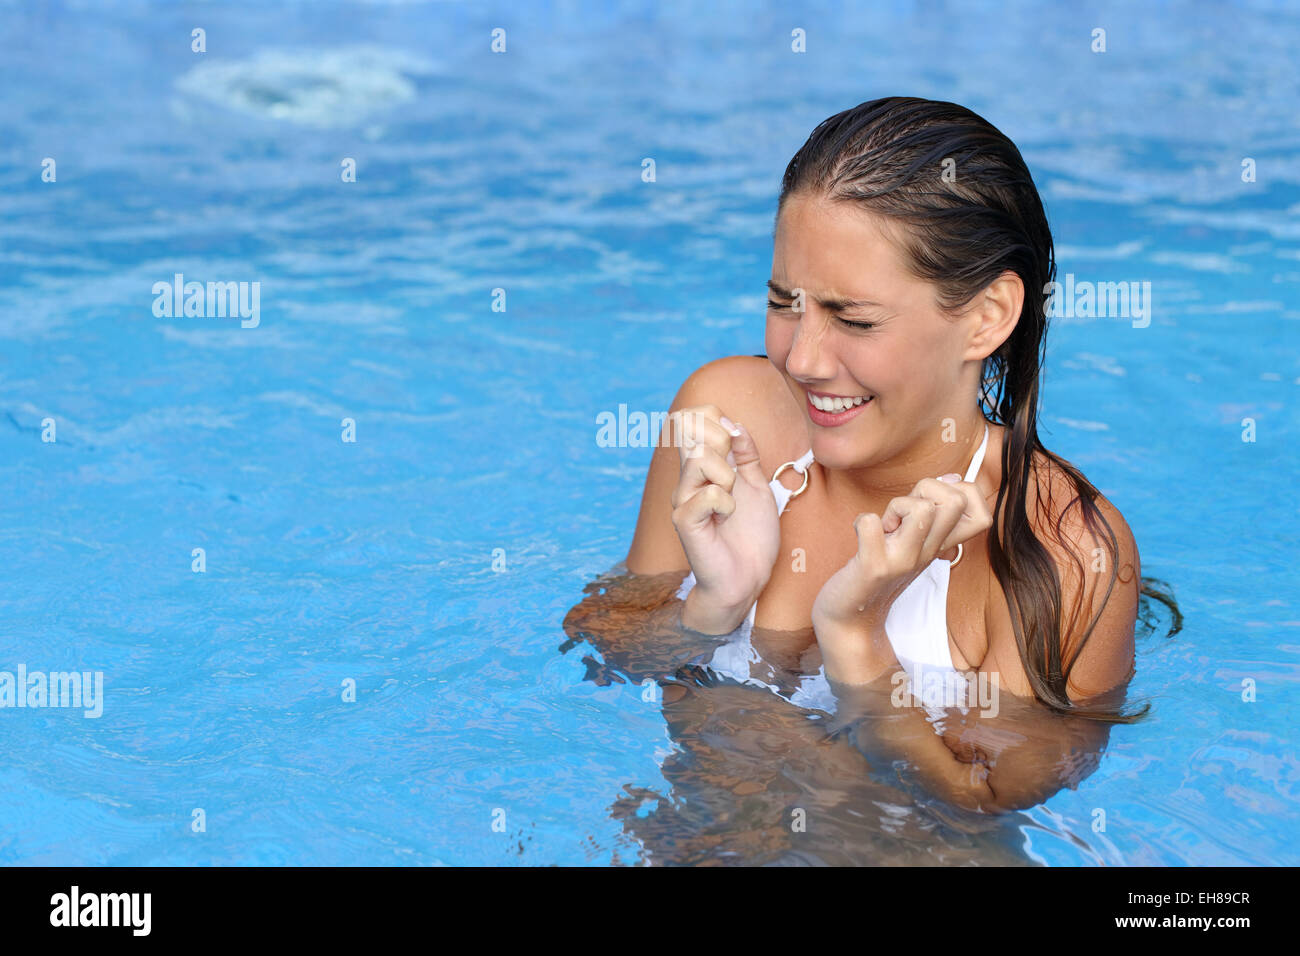 Woman complaints while bathing in a cold water of a swimming pool - Stock Image